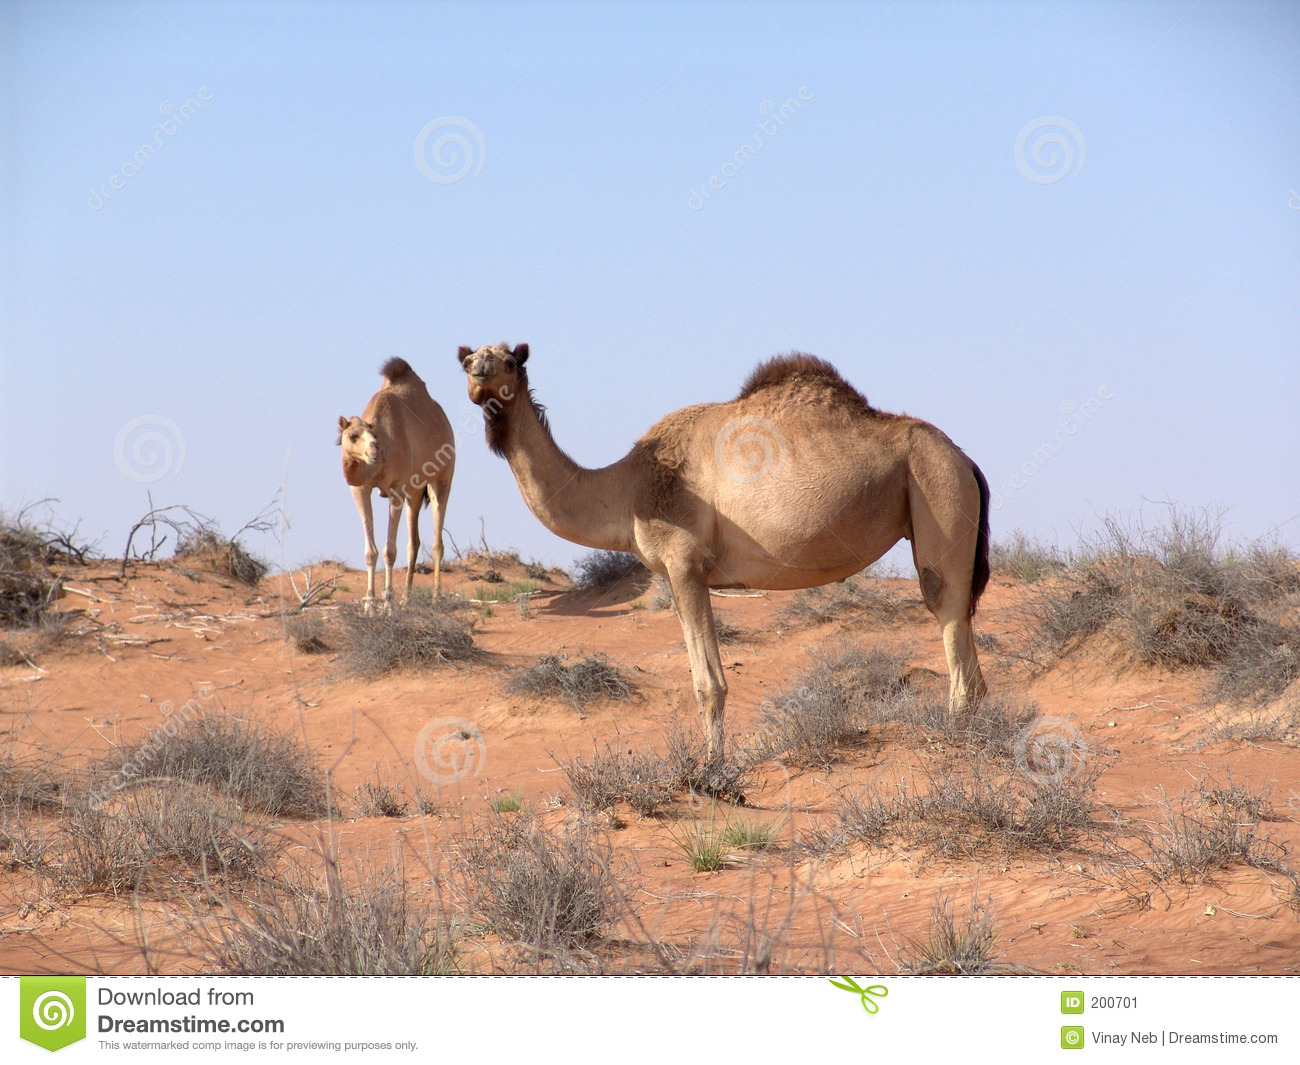 essay on desert animal camel The animals that live in the desert usually have special  good example of an animal with special adaptations is the camel  reference to desert animals.